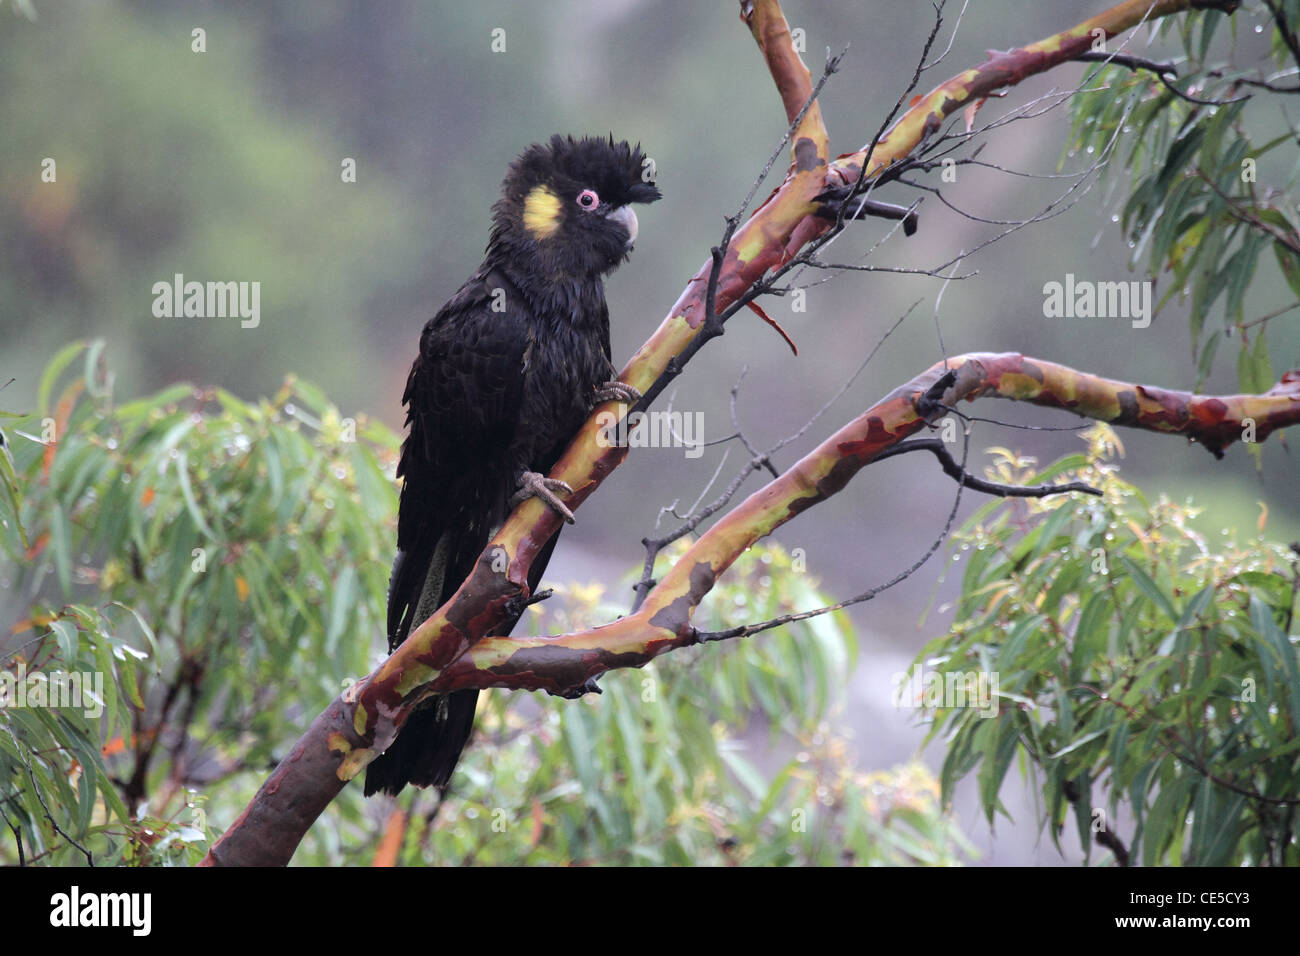 Yellow-tailed black-cockatoo. - Stock Image